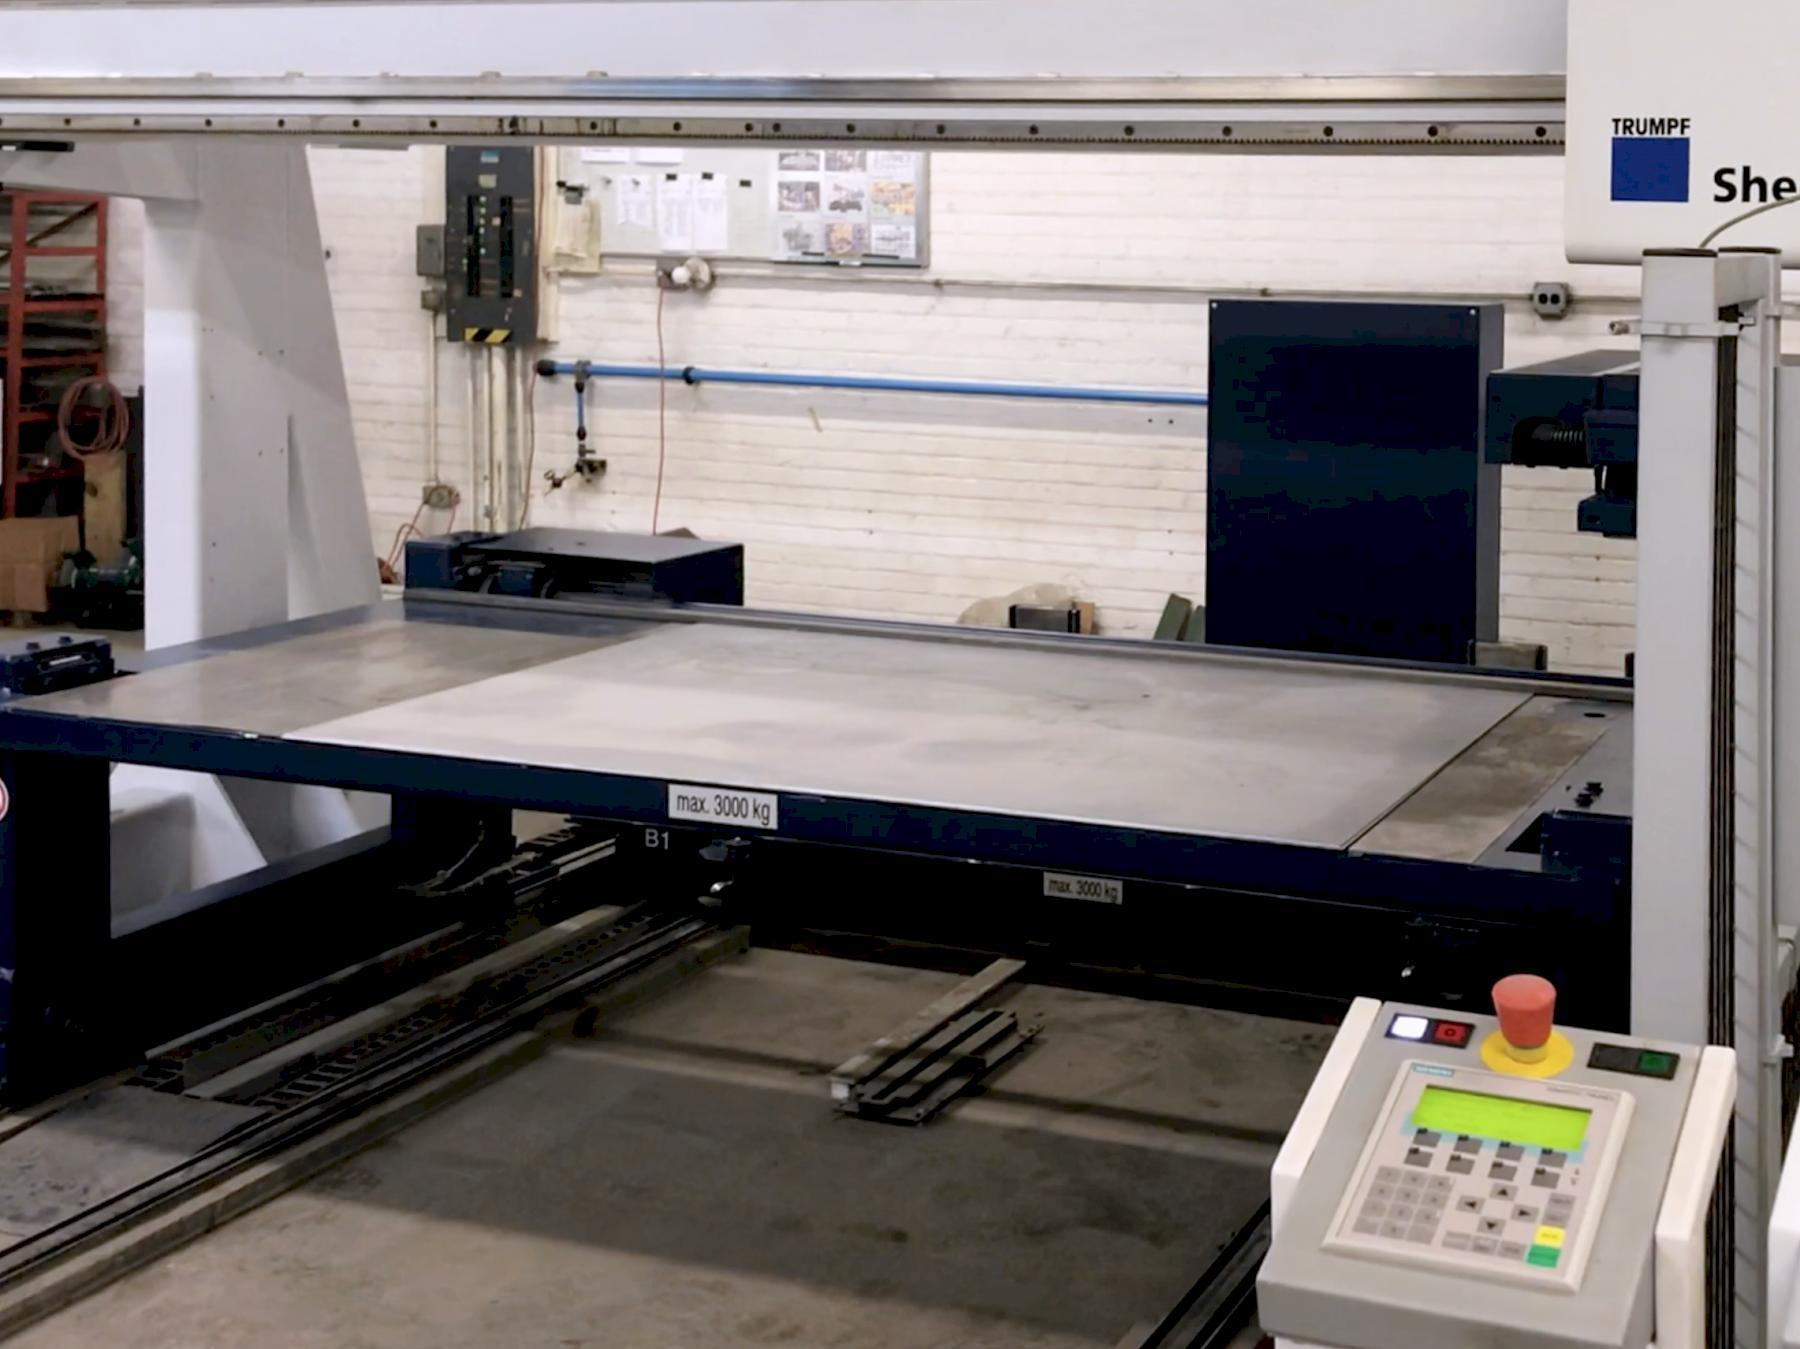 Trumpf TruPunch 3000 2012 w/Automation